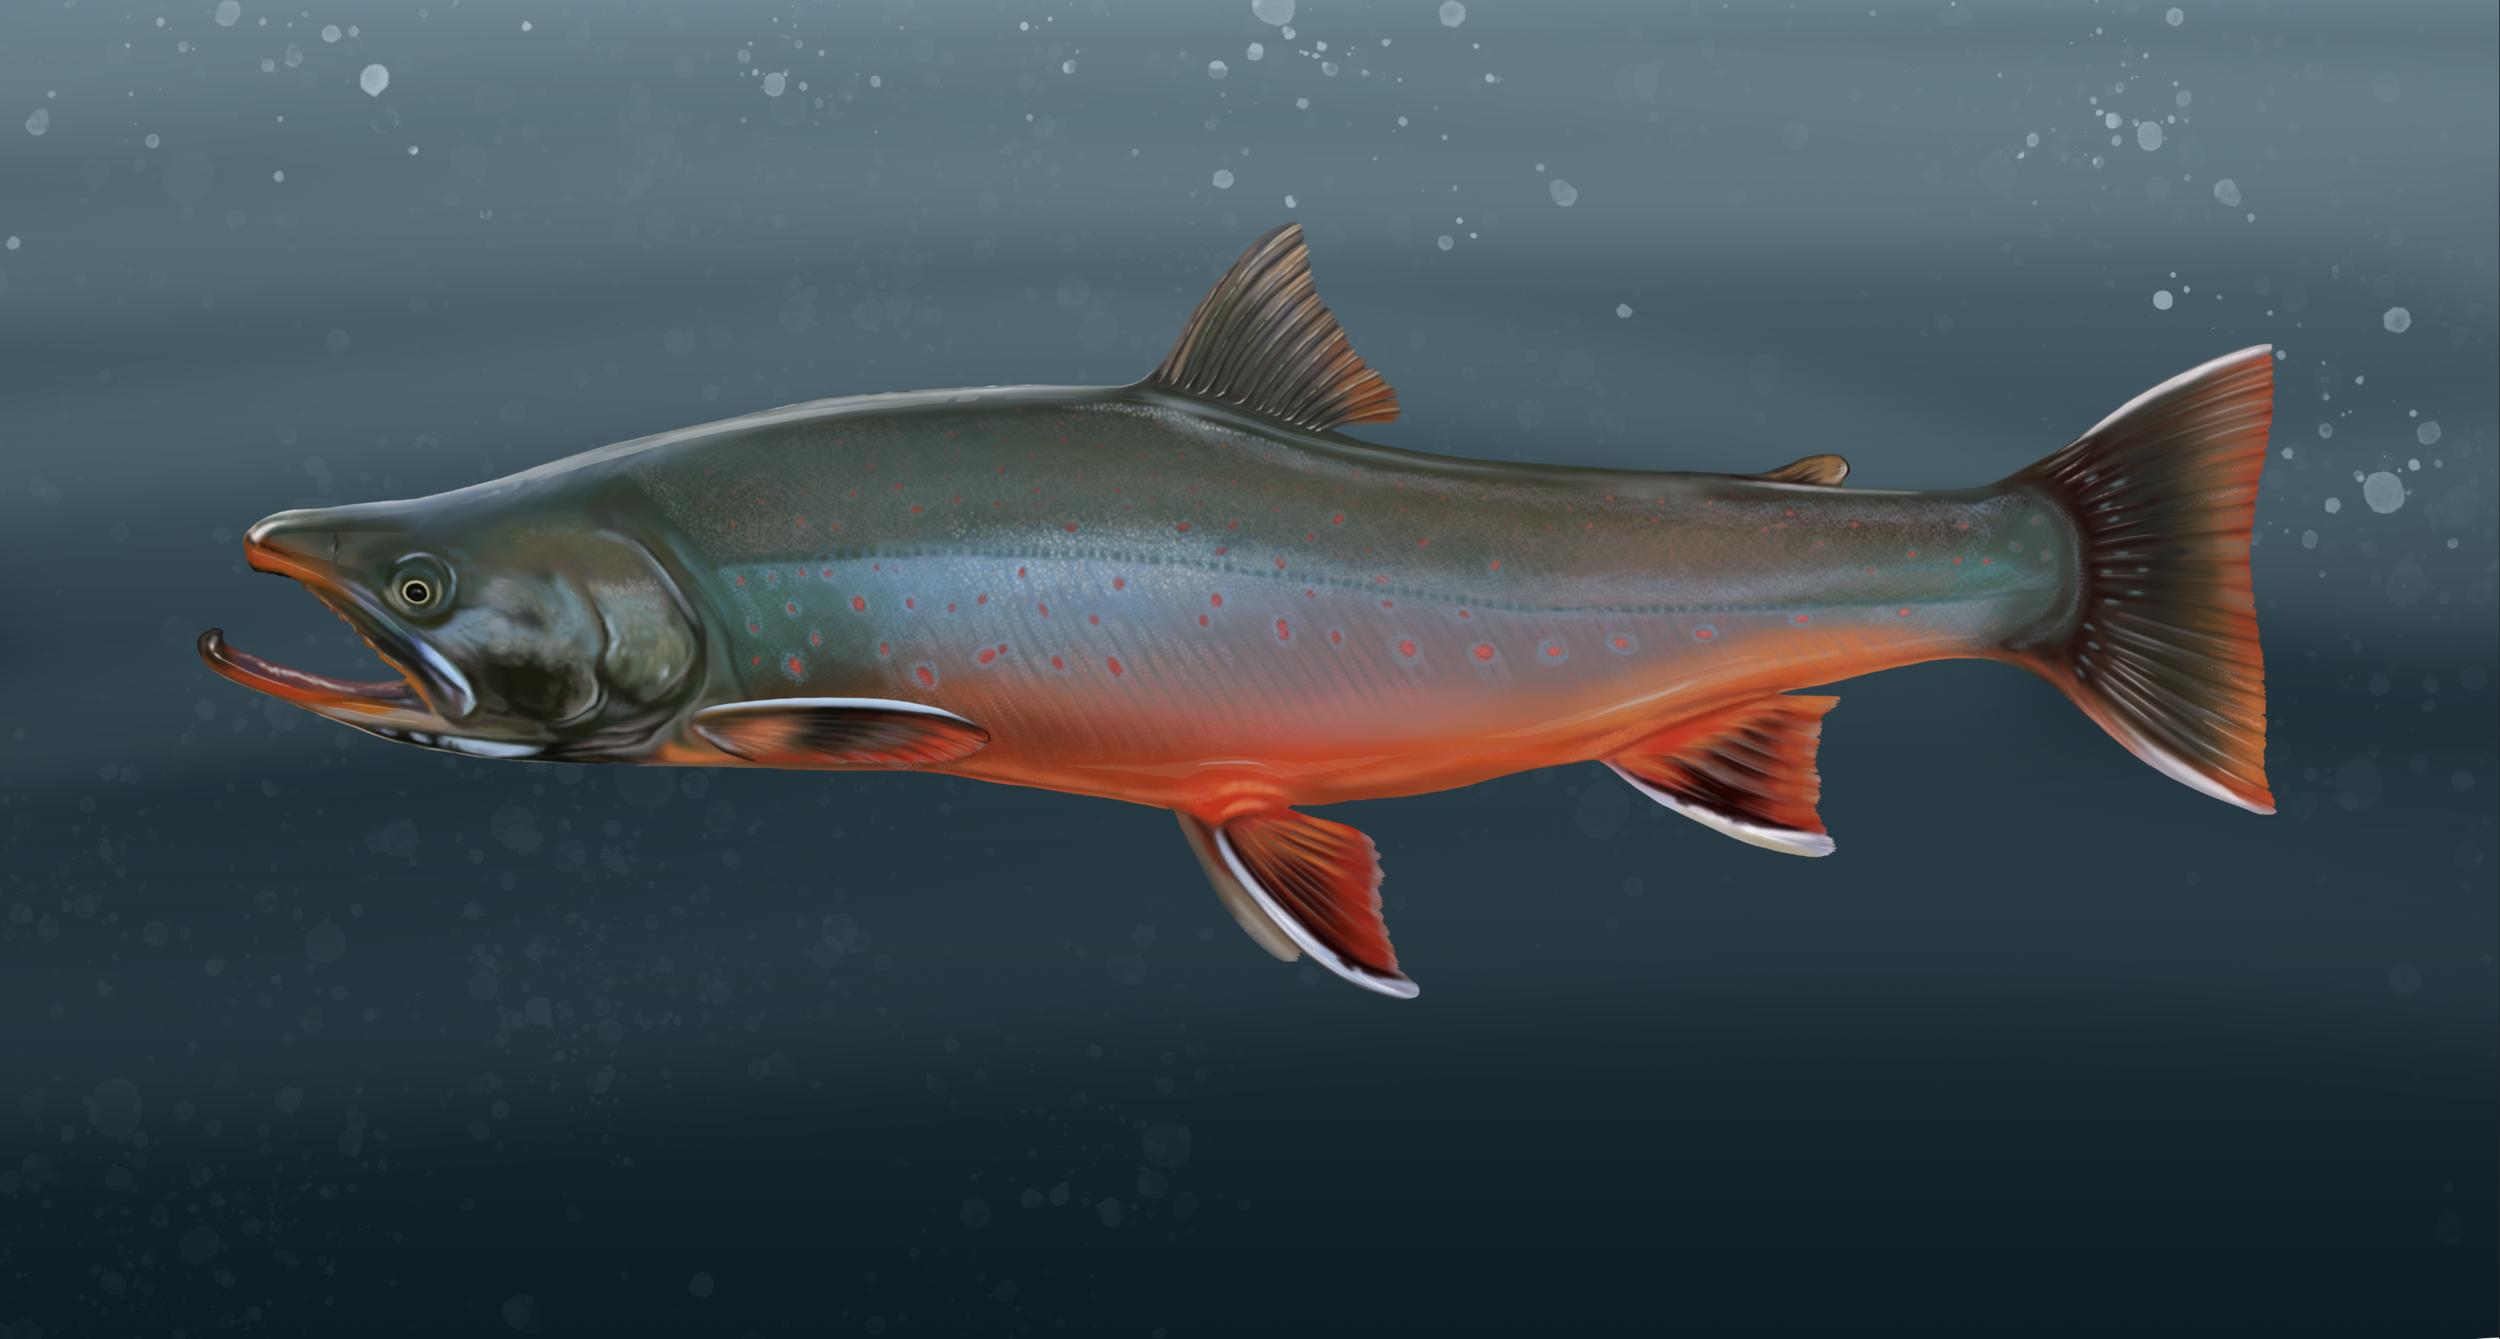 The Dolly Varden Trout